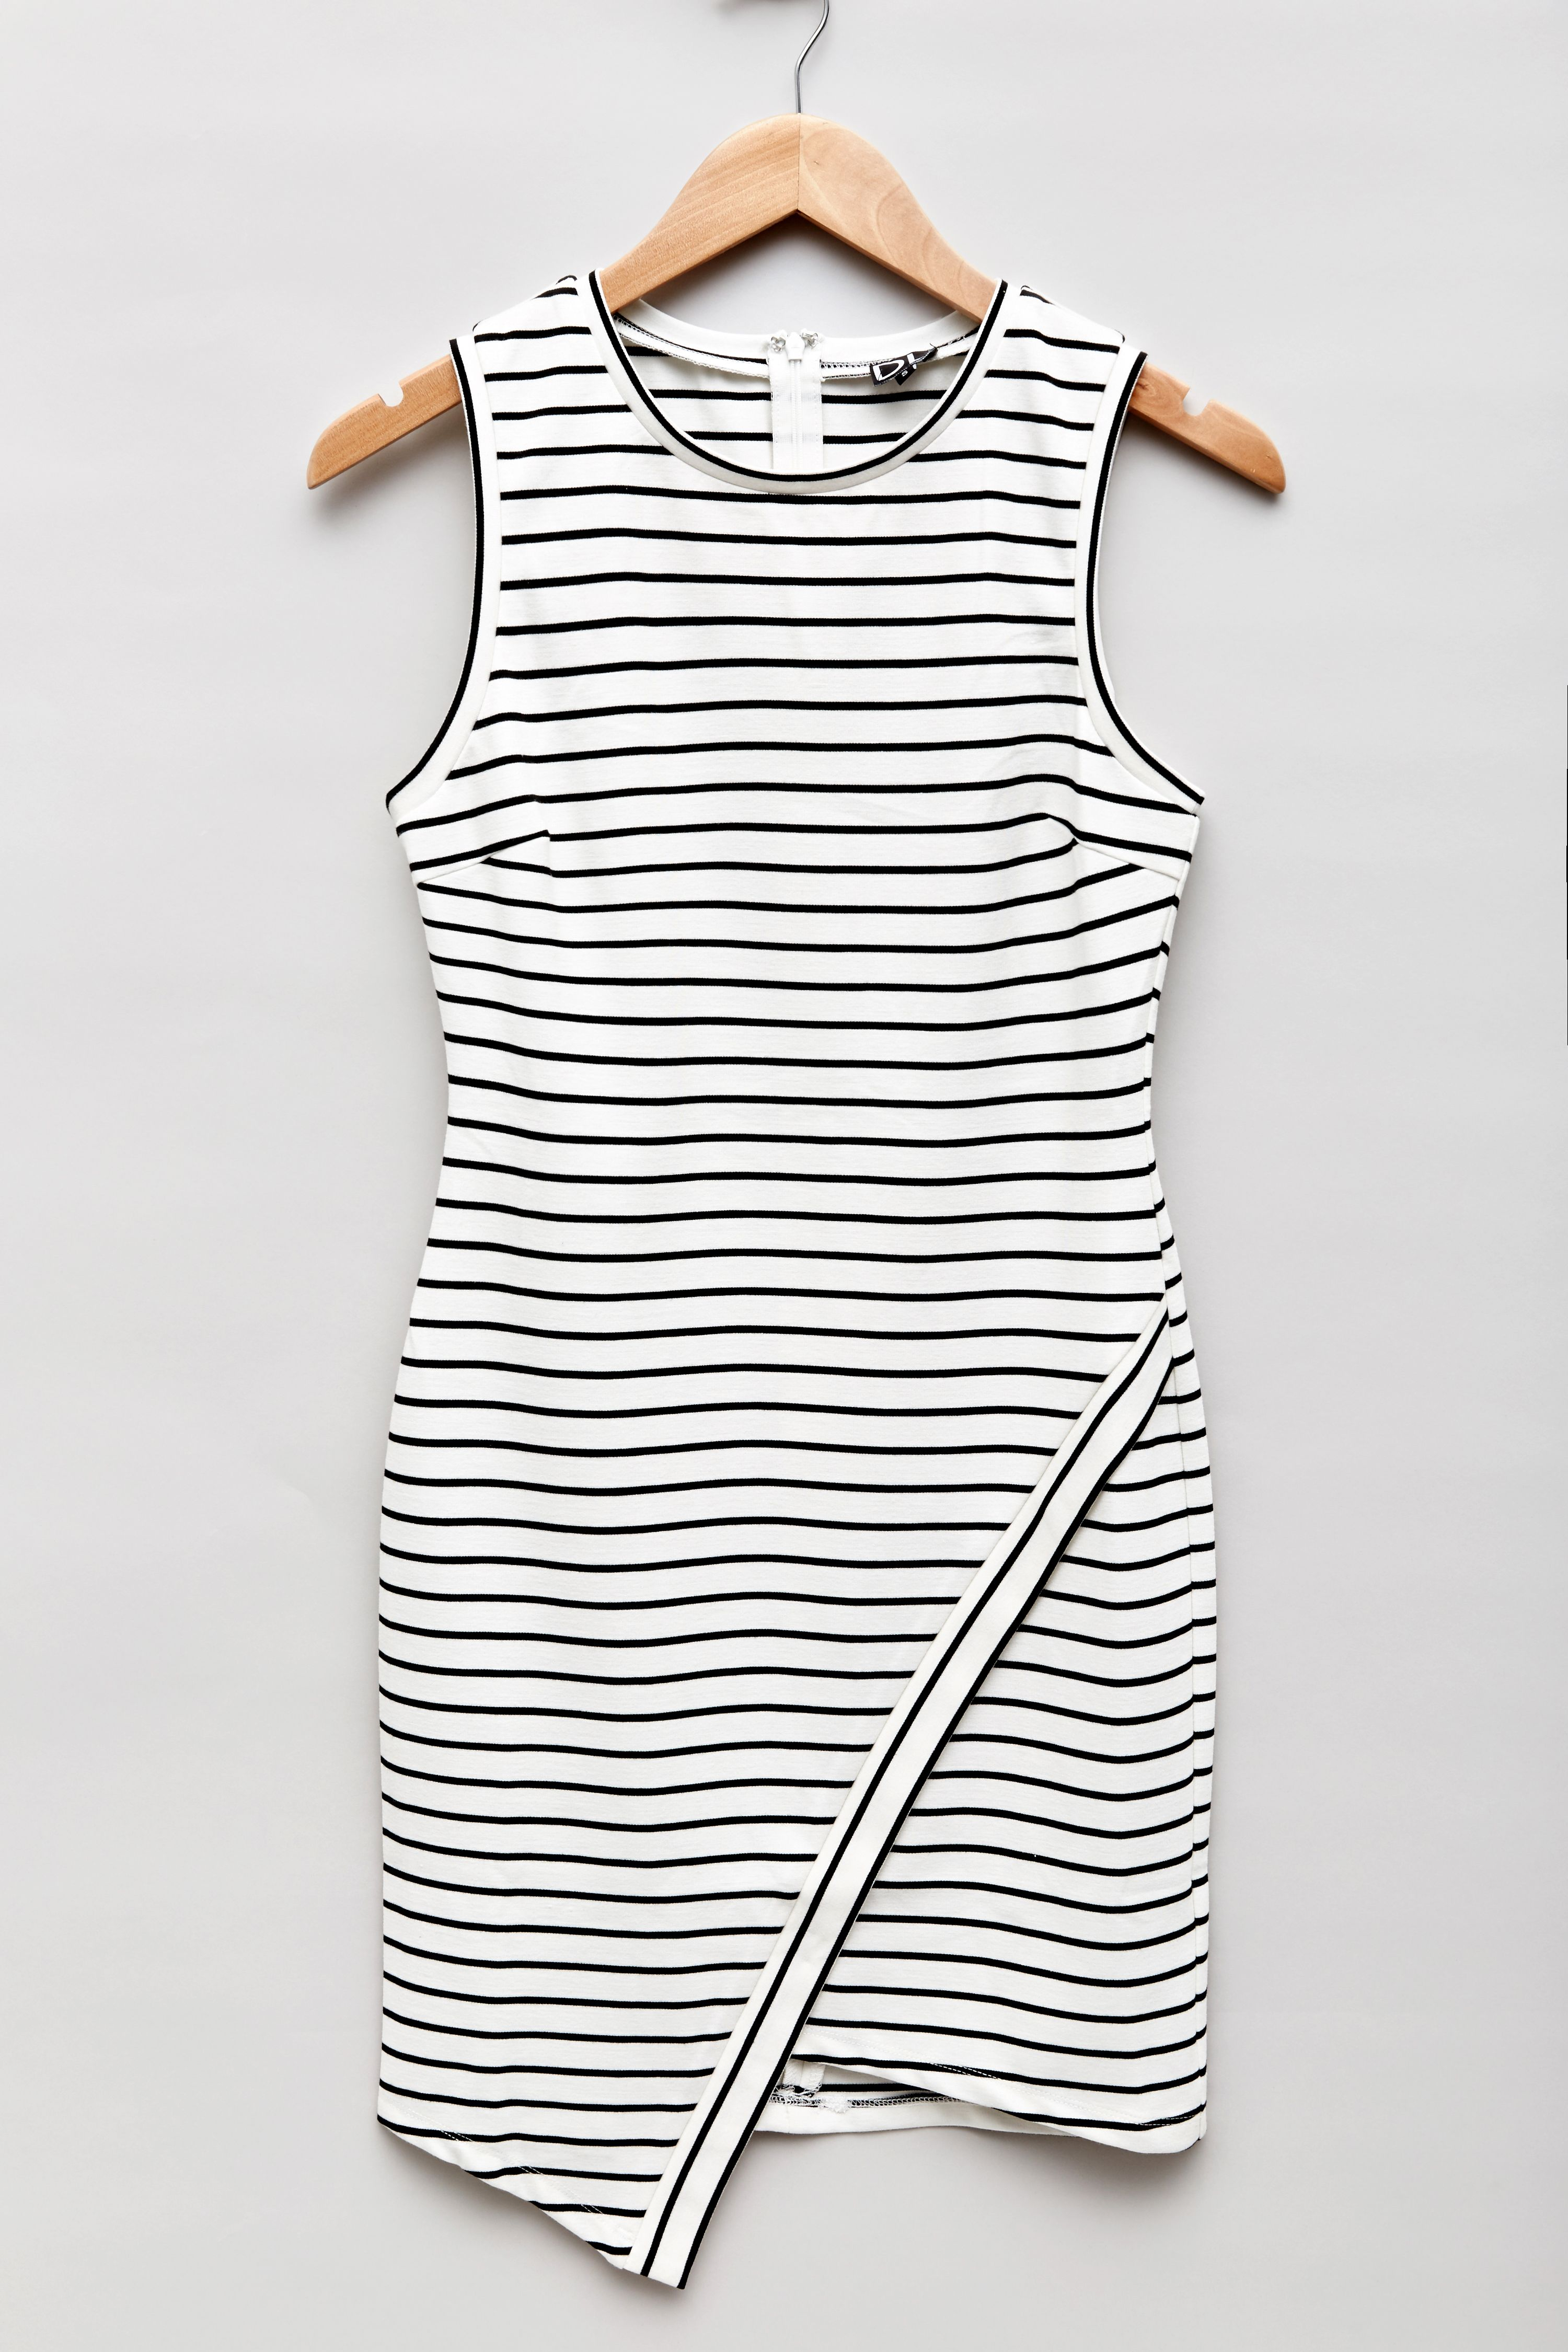 Our best-selling DAILYLOOK Elaina dress is back in stock and ready to get packaged in your Elite boxes. It's the perfect striped dress!